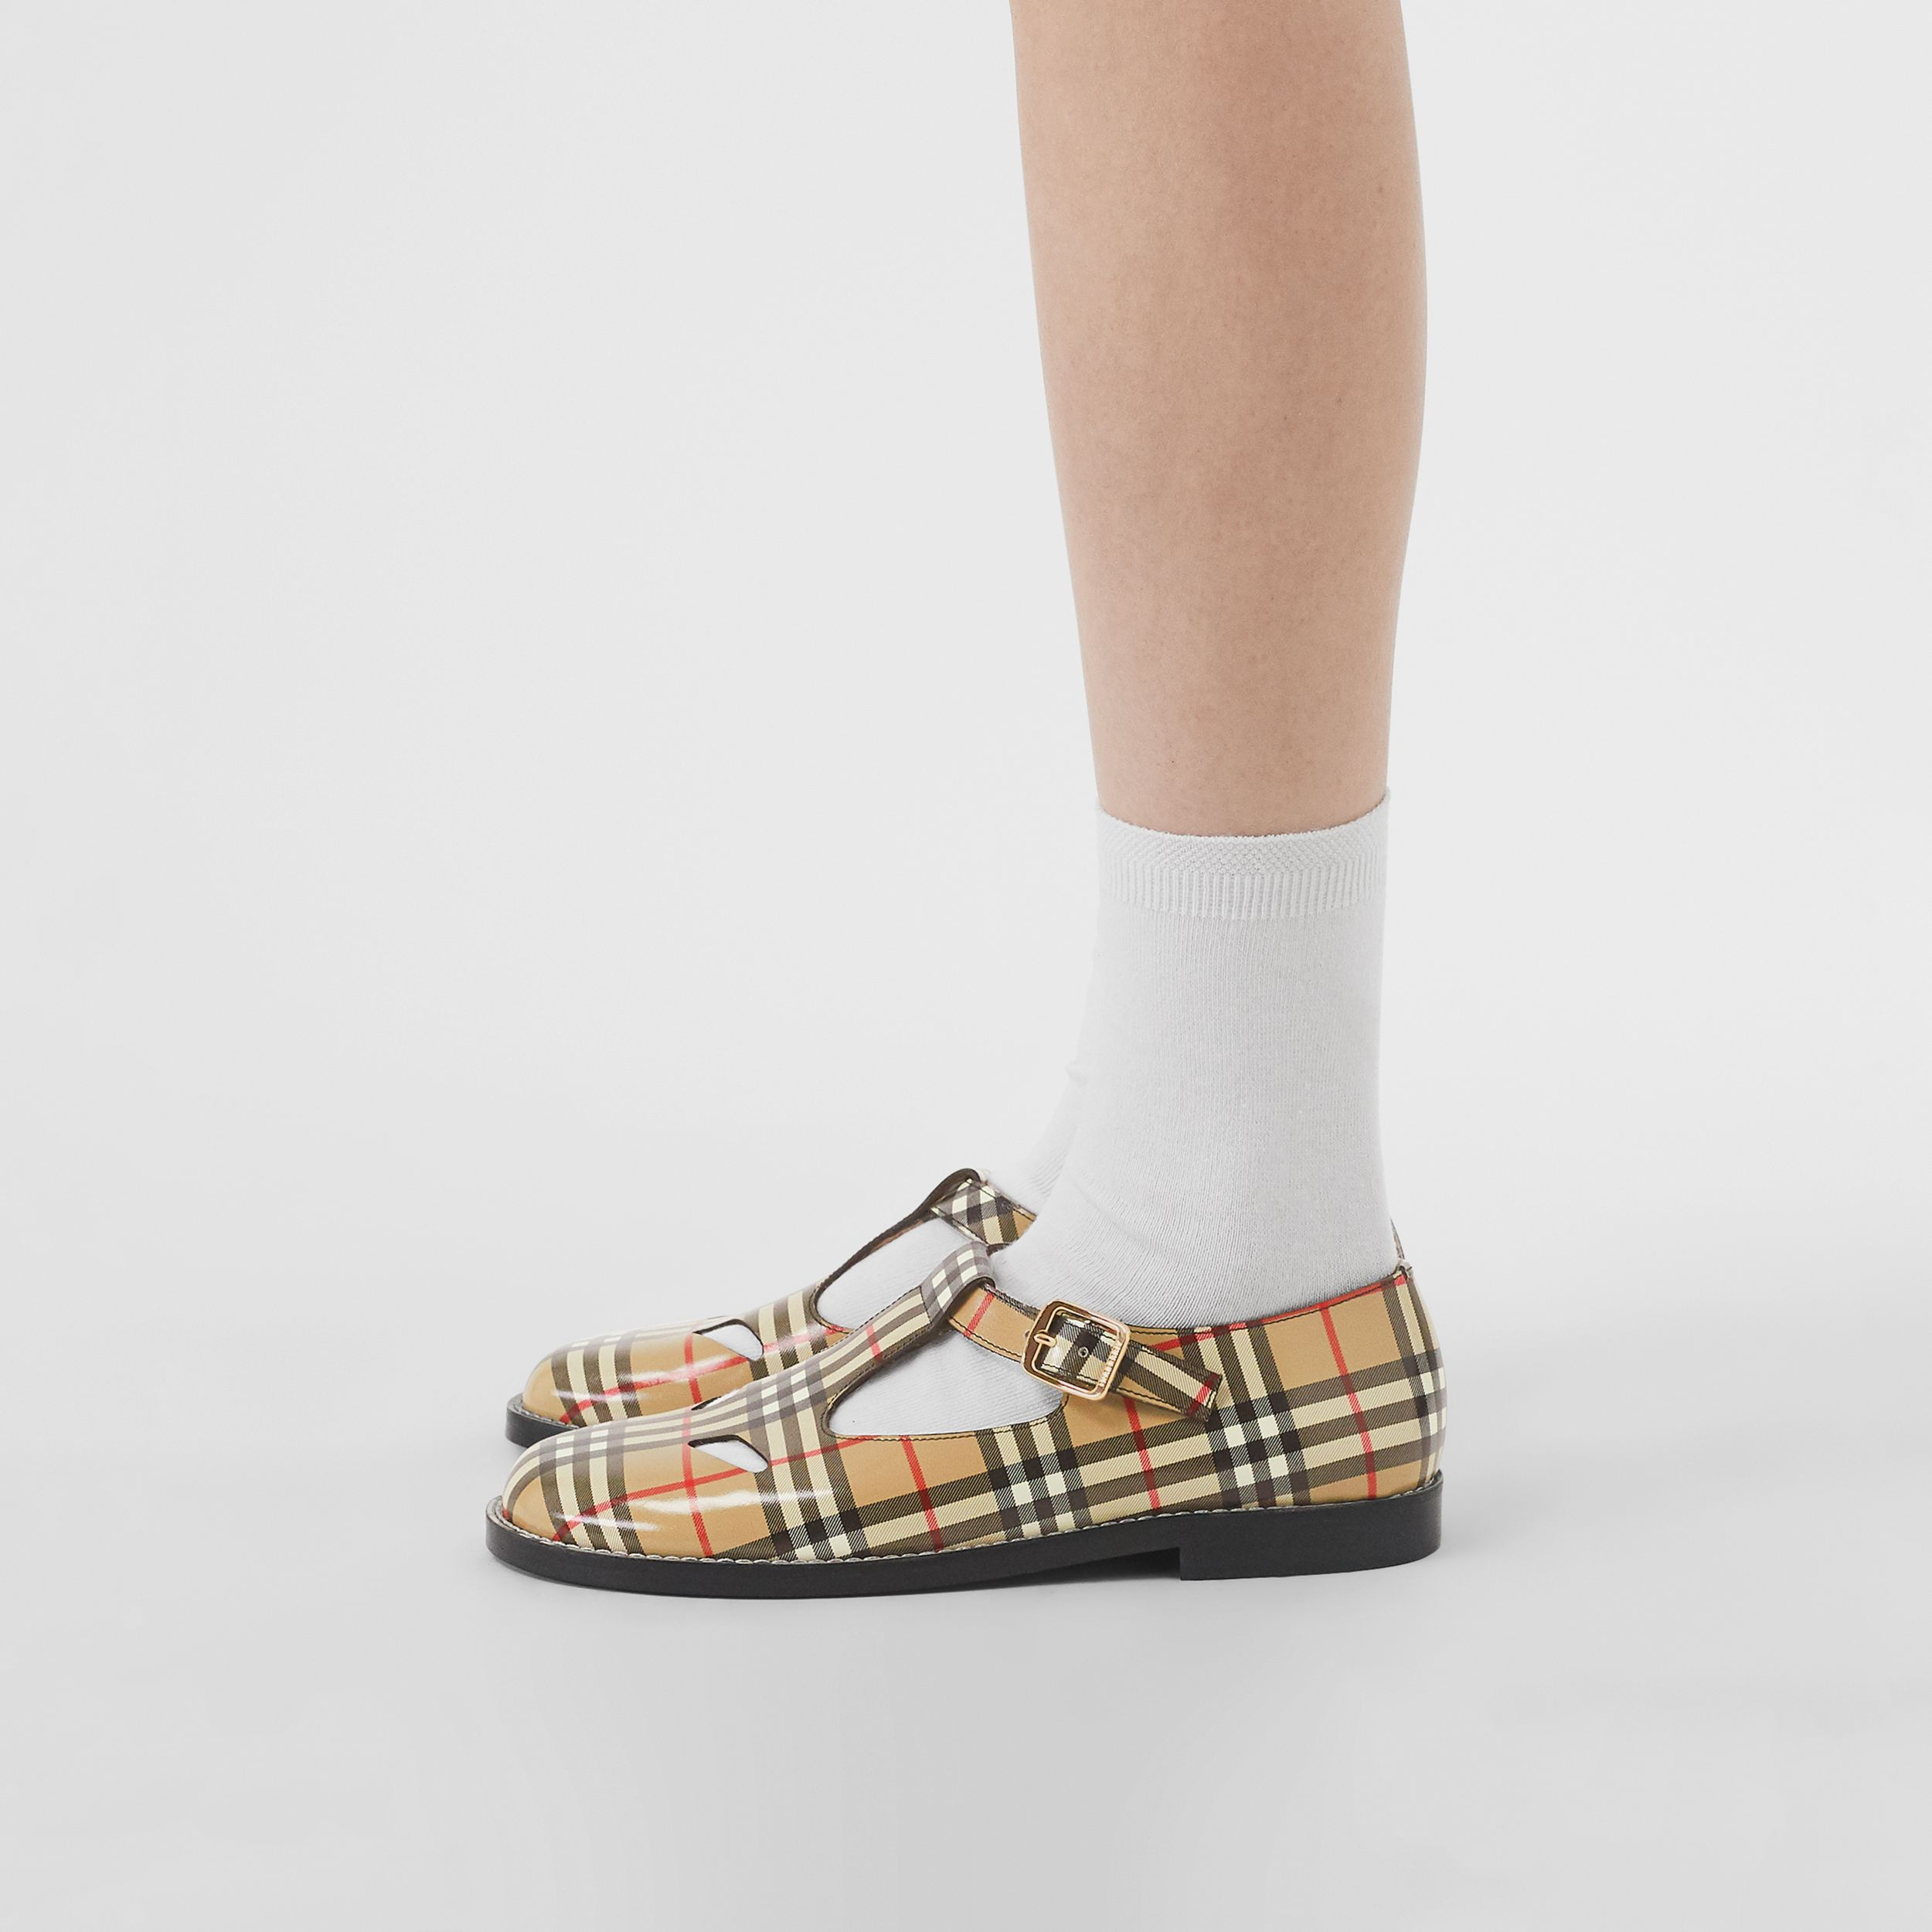 Vintage Check Leather T-bar Shoes in Archive Beige - Women | Burberry United Kingdom - 3